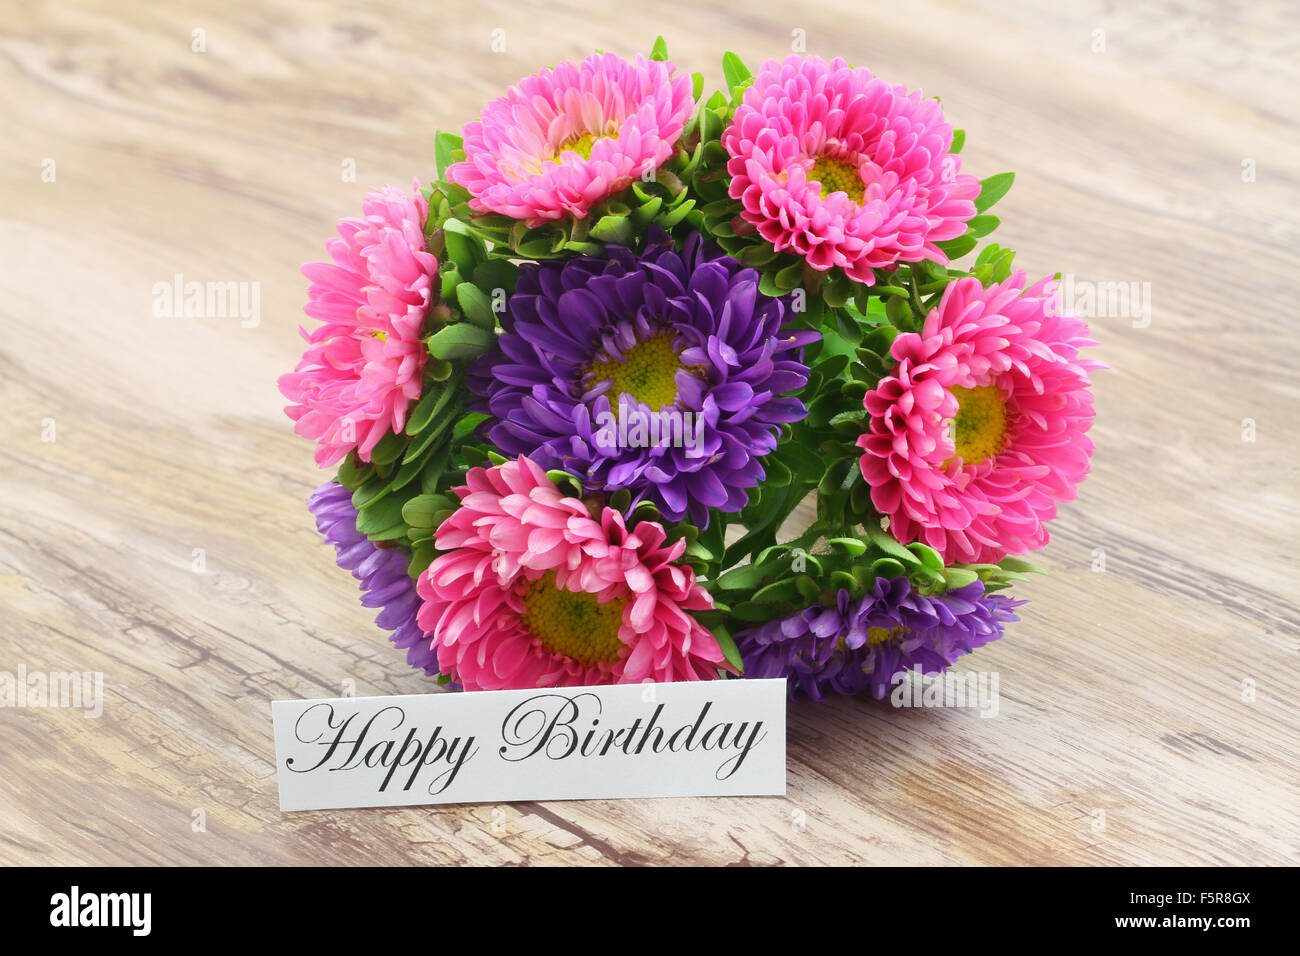 Happy birthday card with colorful aster flowers bouquet stock photo happy birthday card with colorful aster flowers bouquet izmirmasajfo